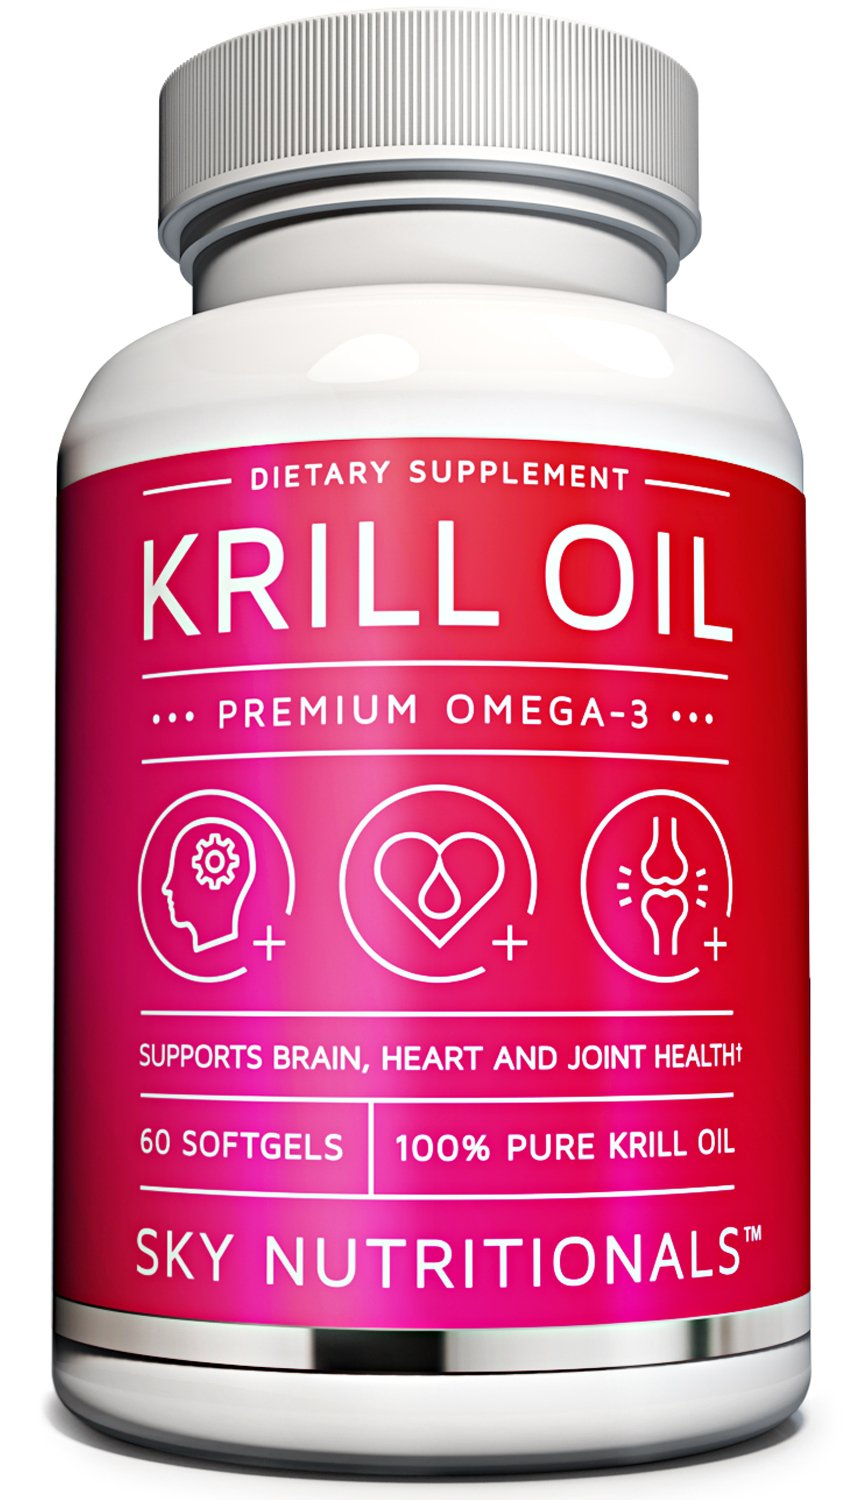 Sky Nutritionals, Premium Strength NKO Antarctic Krill Oil, 1,000mg per serving, Omega-3 EPA,; Astaxanthin. Supports heart, brain and joint health. 60 - Easy to swallow softgel capsules per bottle.